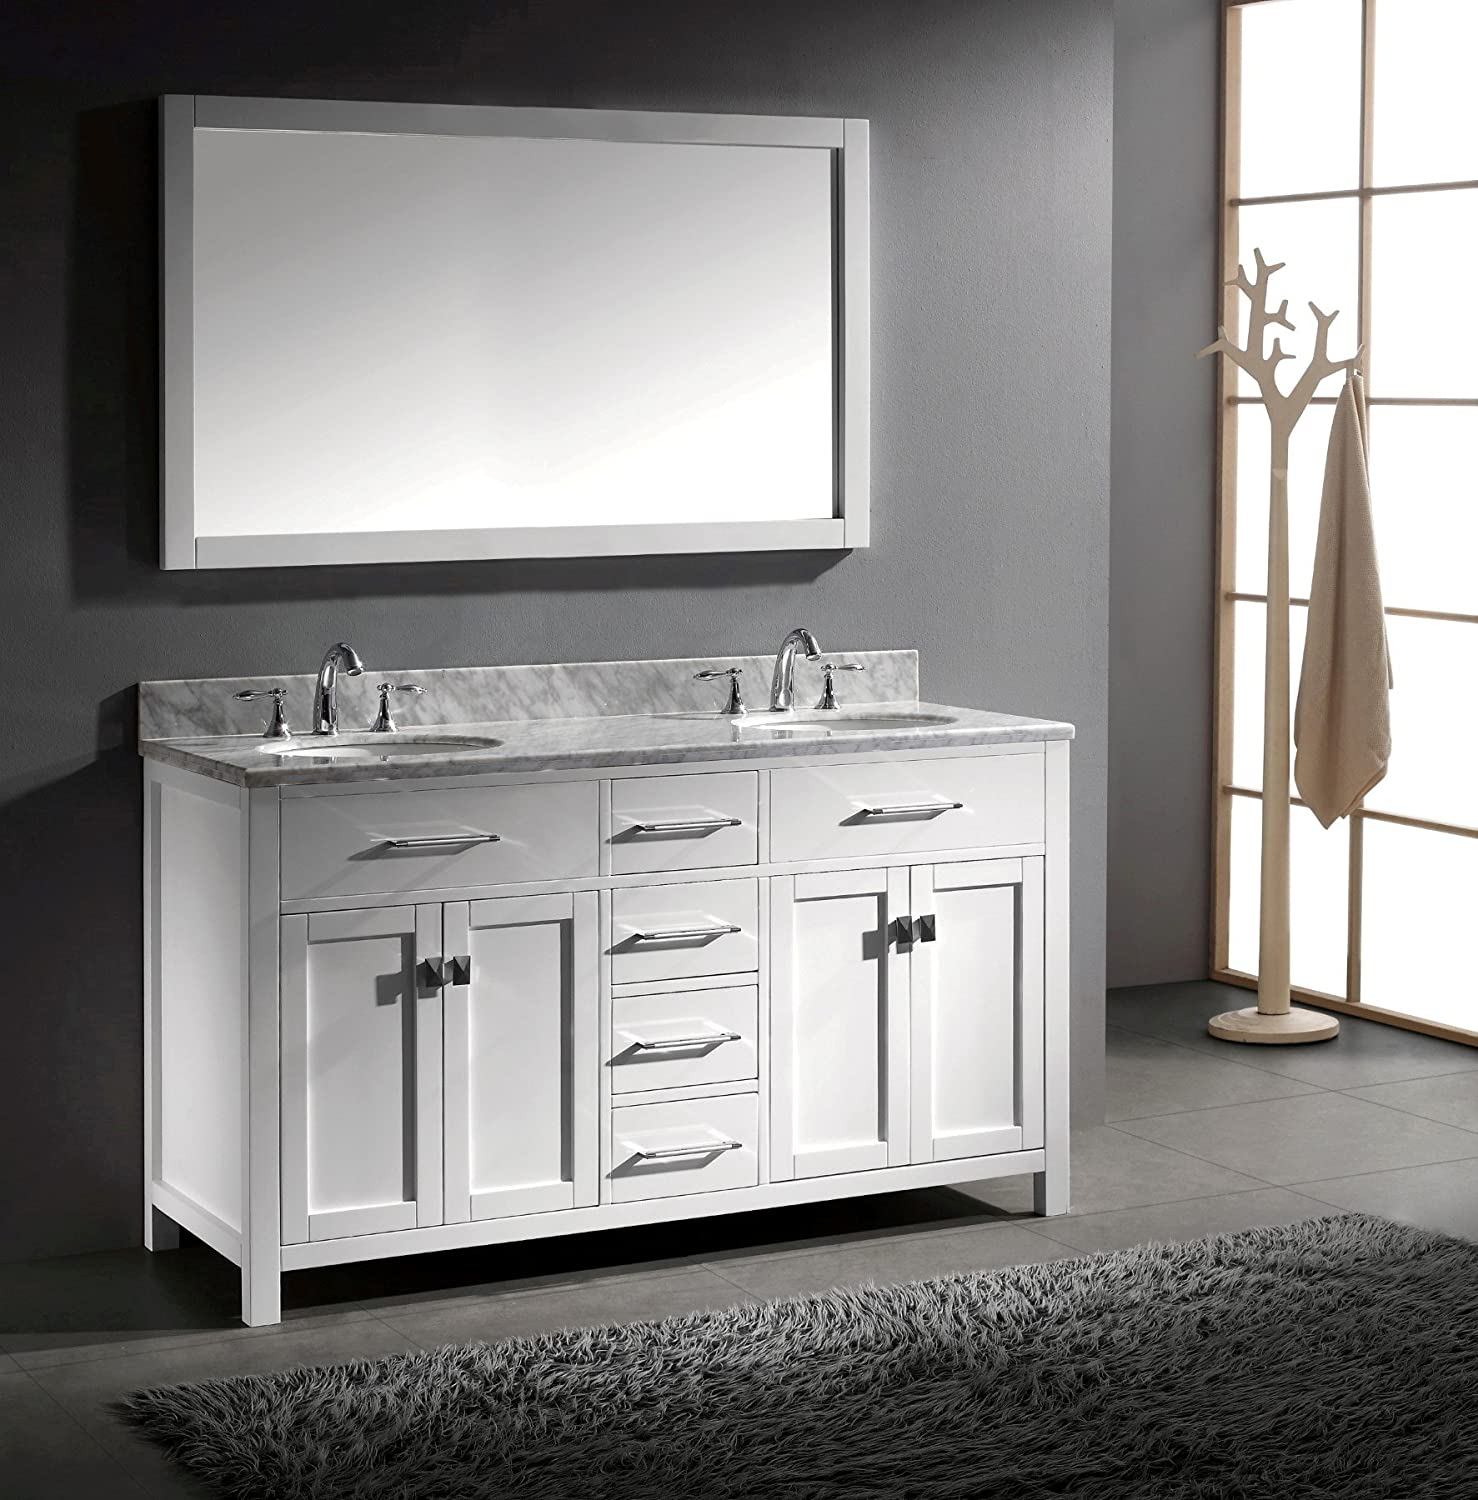 virtu usa caroline 60inch bathroom vanity with double round sinks in white and italian carrera white marble amazoncom - 60 Bathroom Vanity